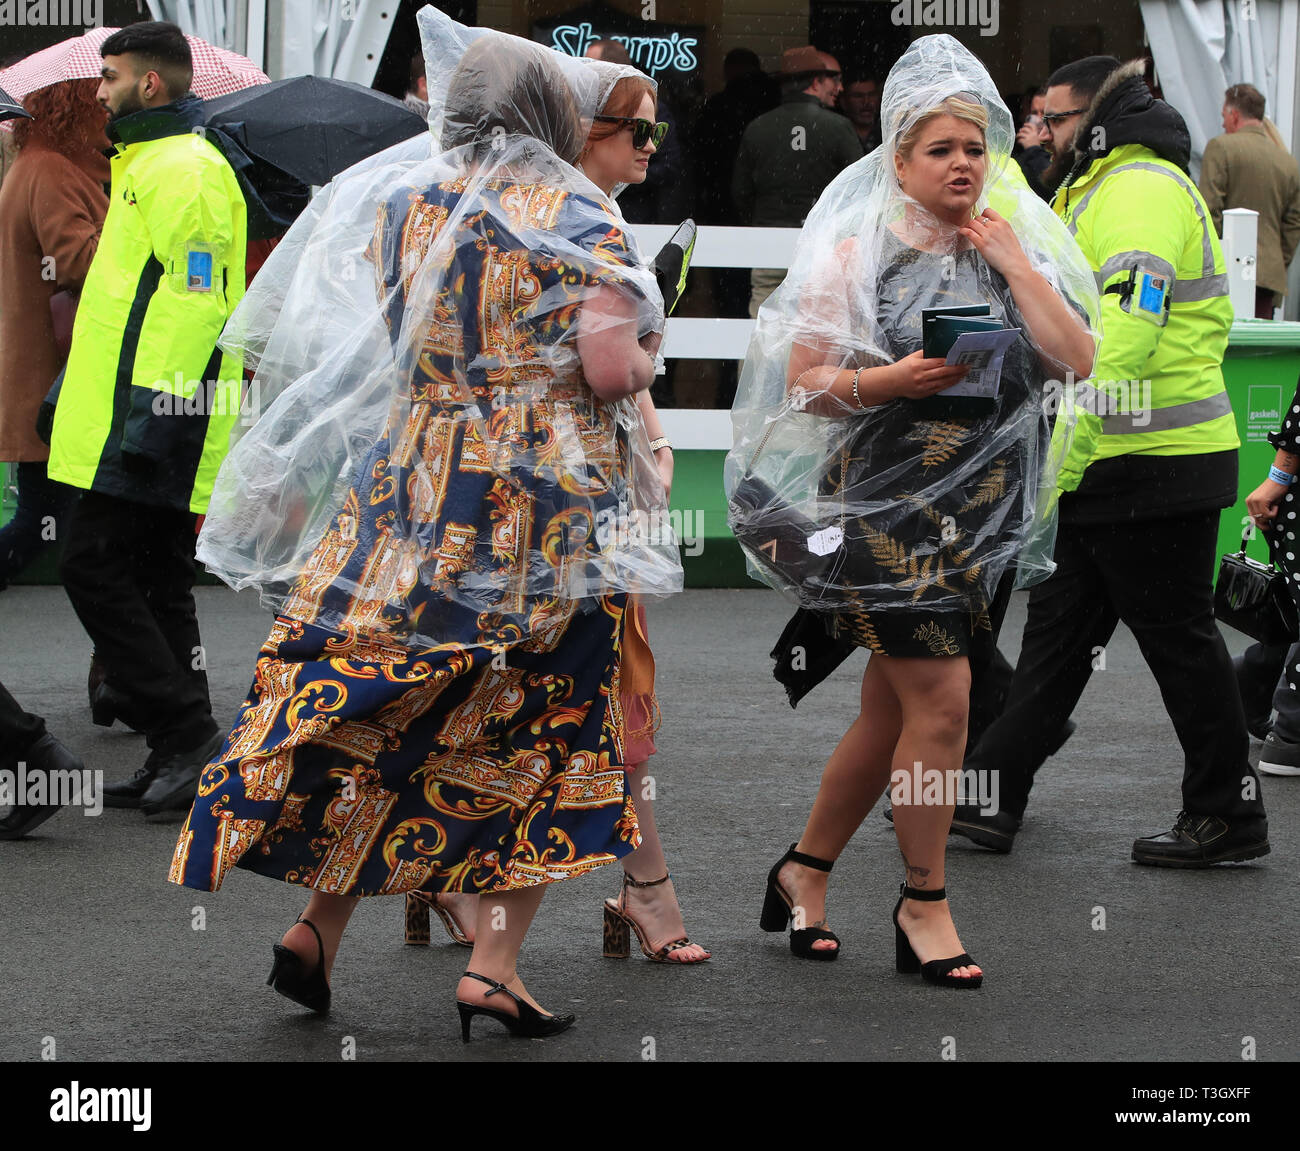 Racegoers shelters from the rain in plastic ponchos at day one of the 2019 Randox Health Grand National Festival at Aintree Racecourse in Liverpool. - Stock Image